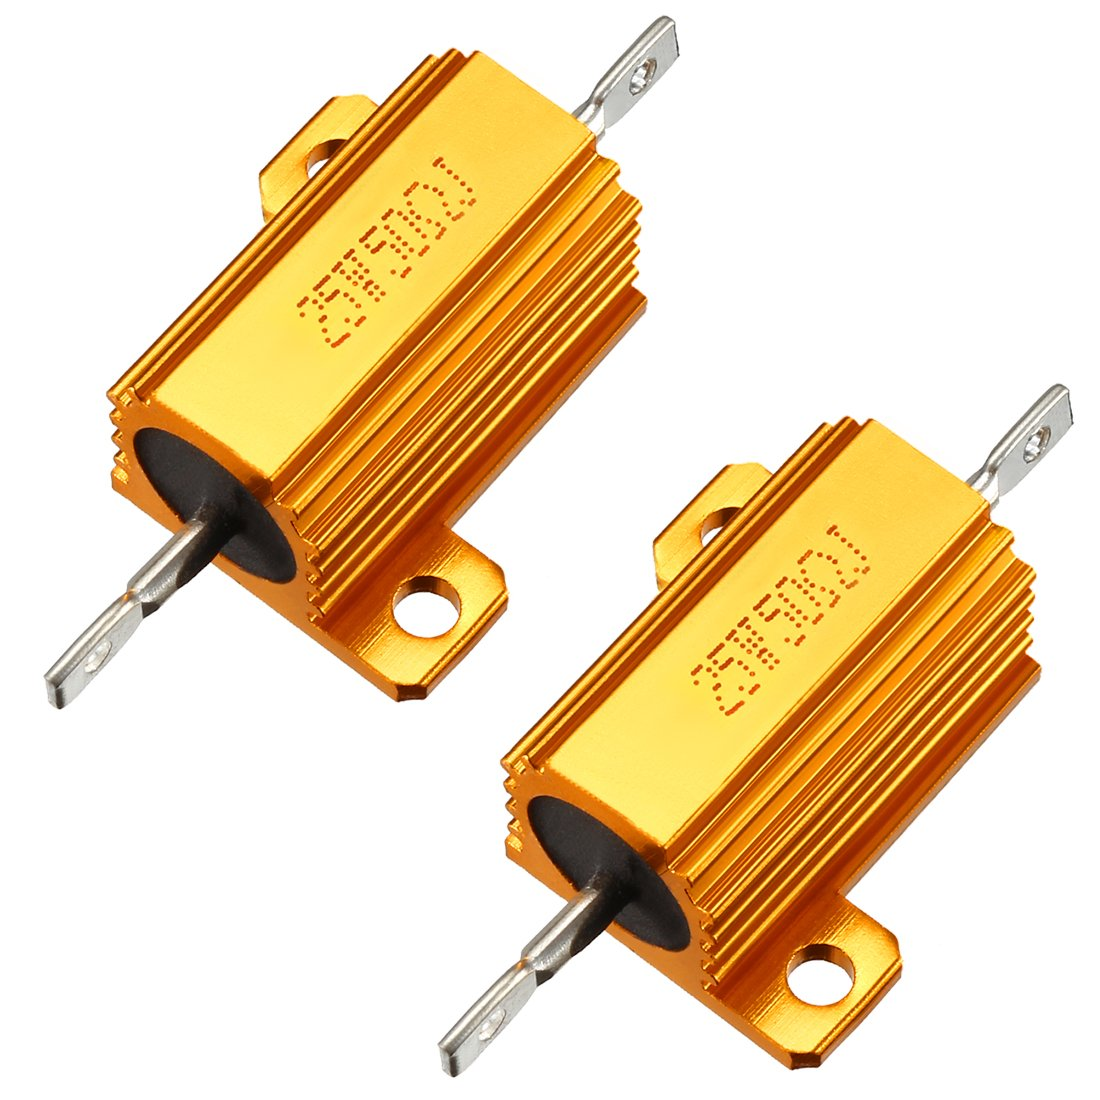 uxcell 25W 100 Ohm 5/% Aluminum Housing Resistor Screw Tap Chassis Mounted Aluminum Case Wirewound Resistor Load Resistors Gold Tone 2 pcs